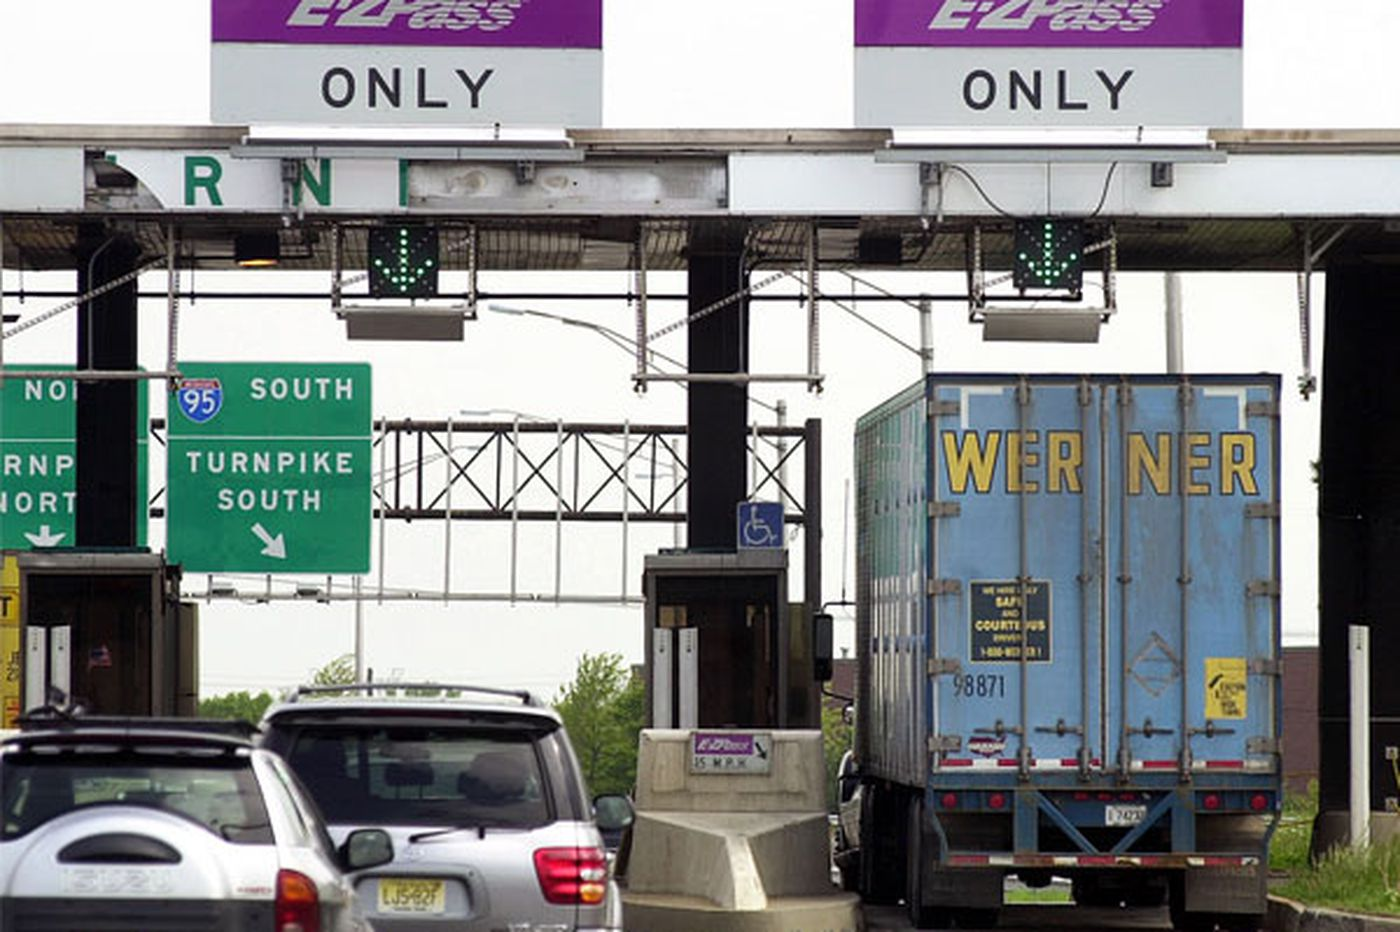 Pa. Turnpike won't take cash by fall 2021